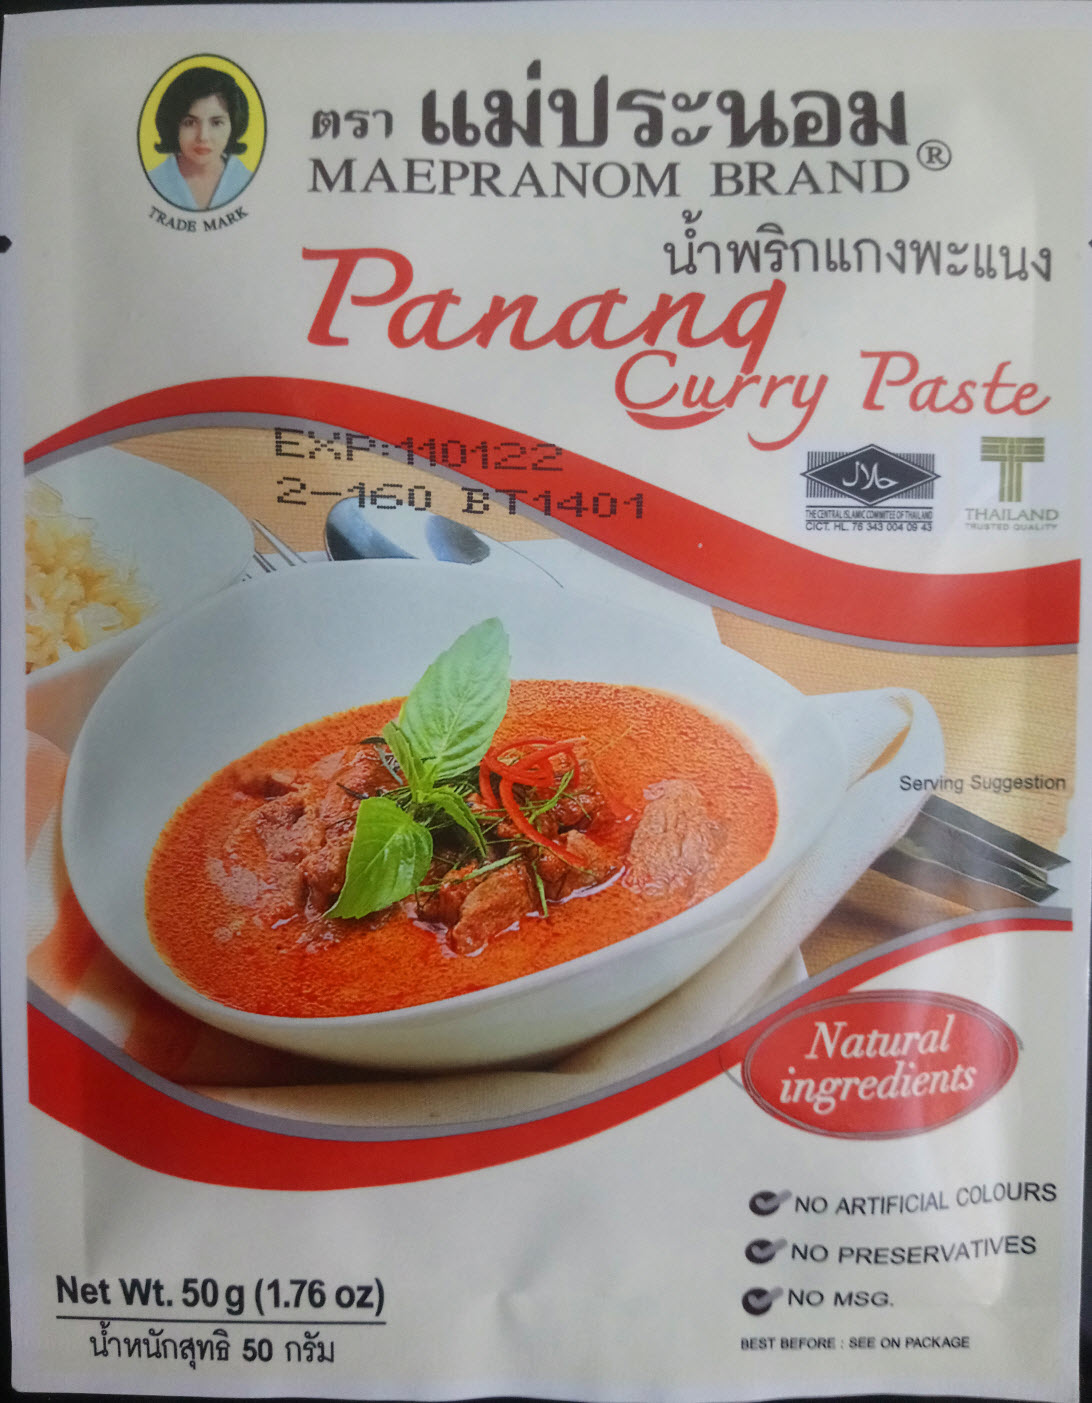 Maepranom Original Authentic Panang Curry Paste Natural Ingredients No MSG 50g